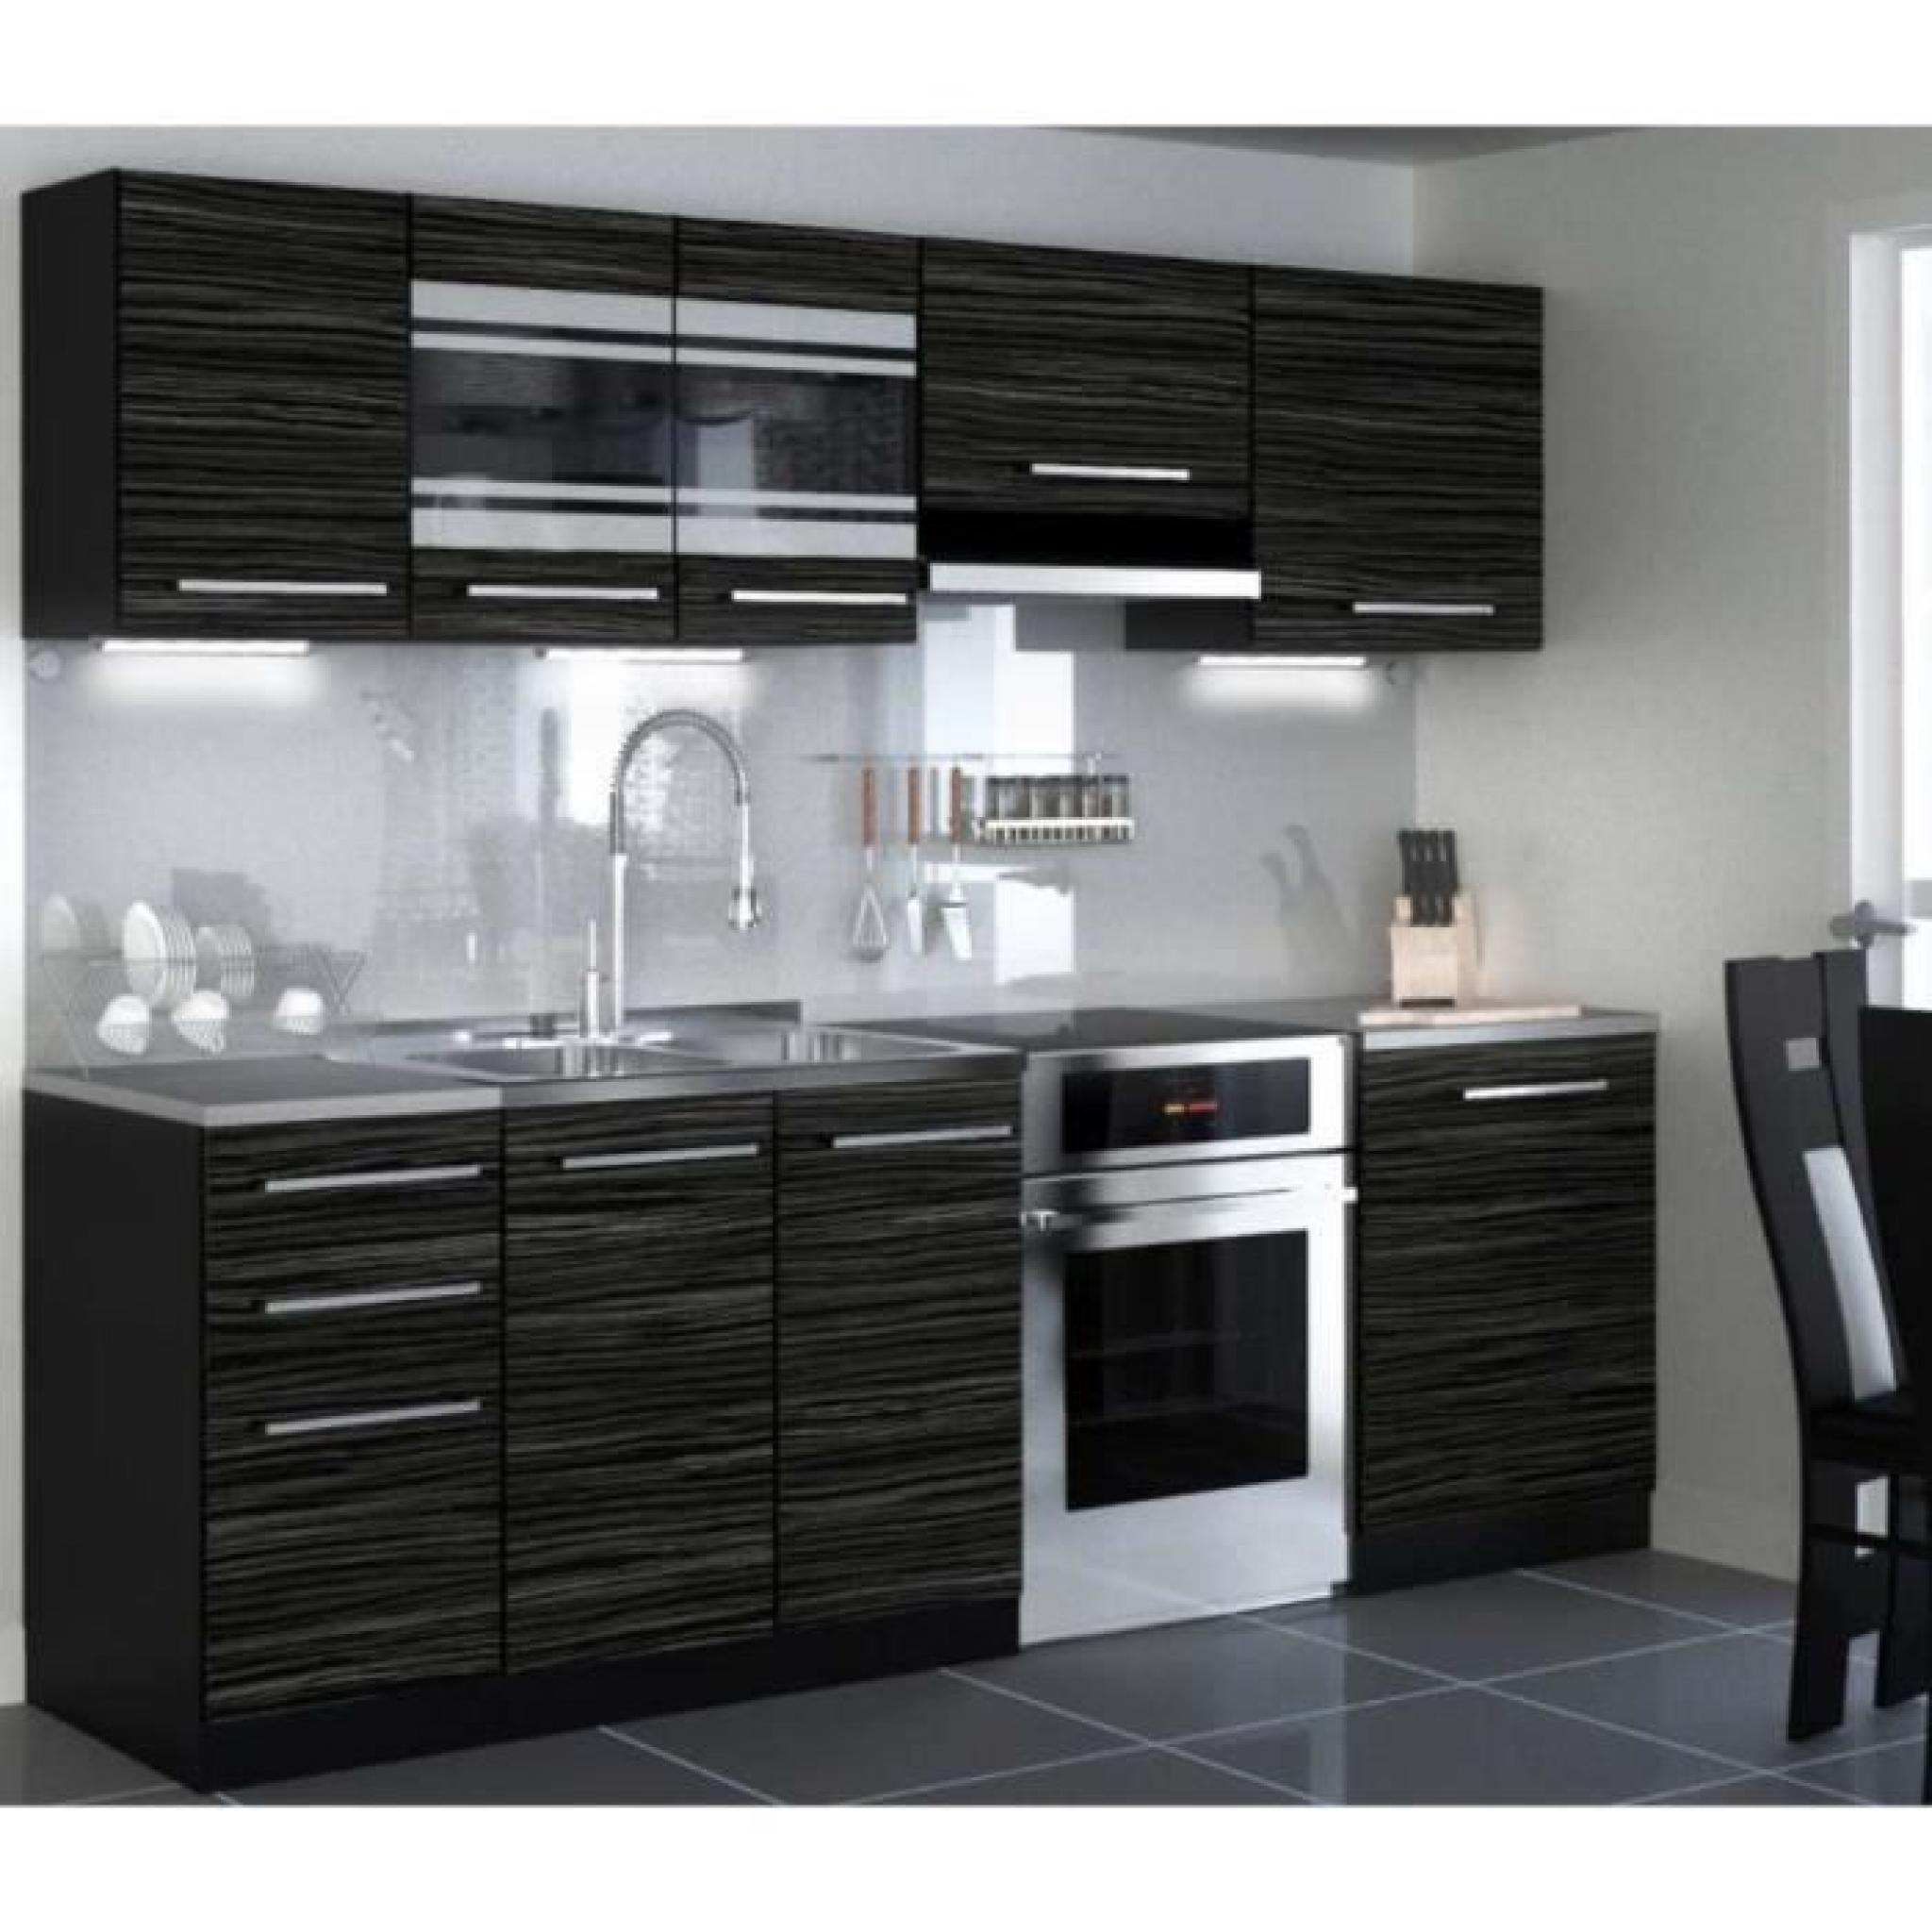 Cuisine Equipee Complete But Justhome Torino Led Cuisine Equipee Complete Cm Modele De